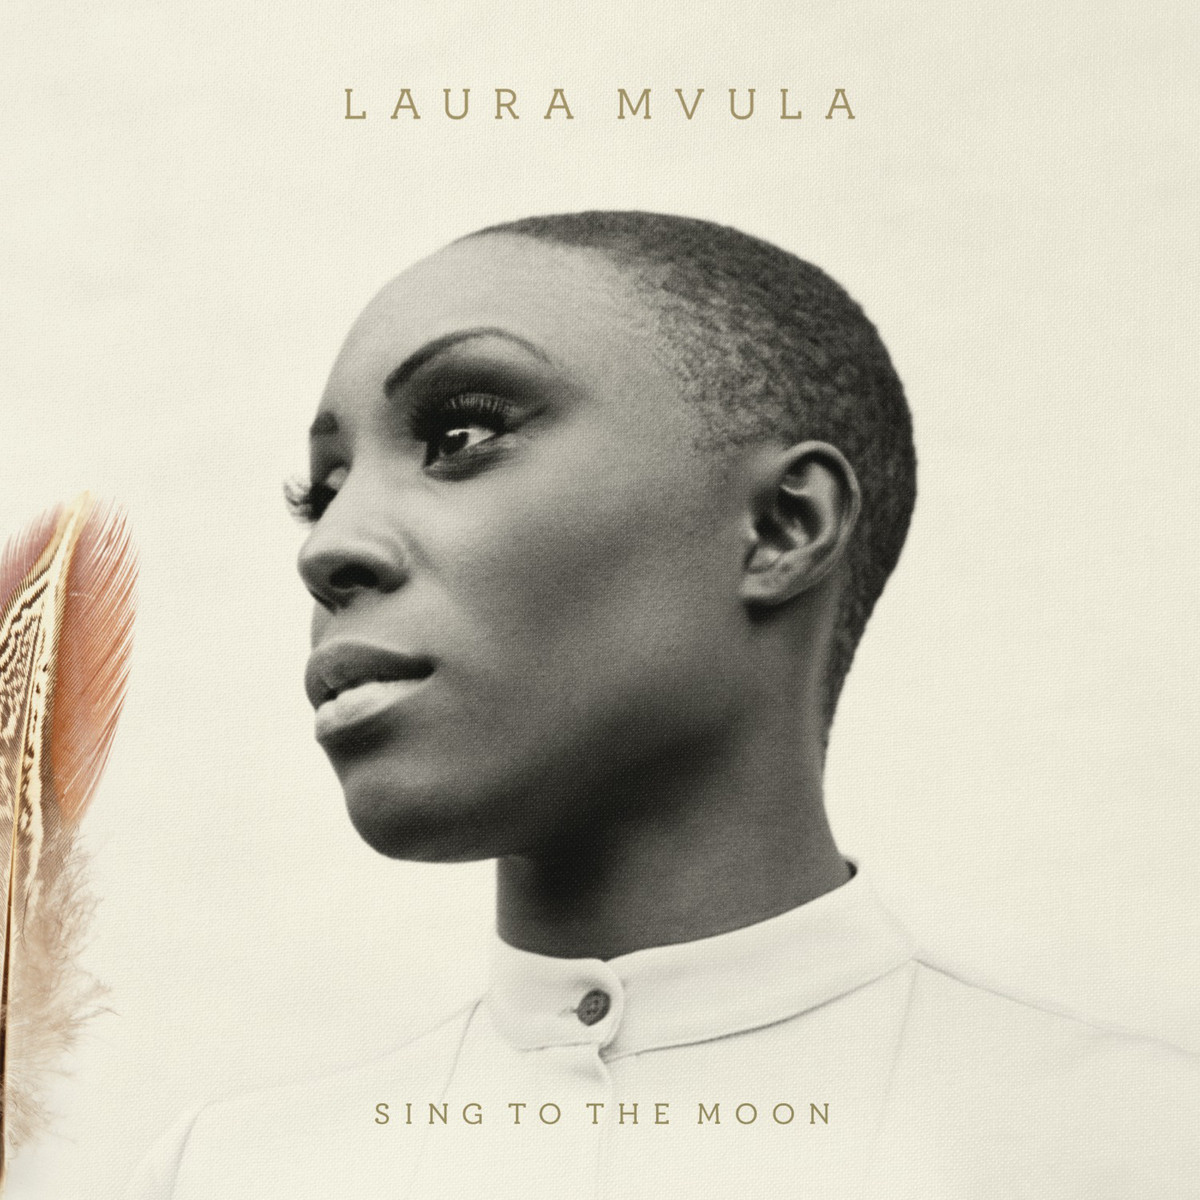 Laura-Mvula-Sing-to-the-Moon-Deluxe-Version-2013-1200x1200[1]